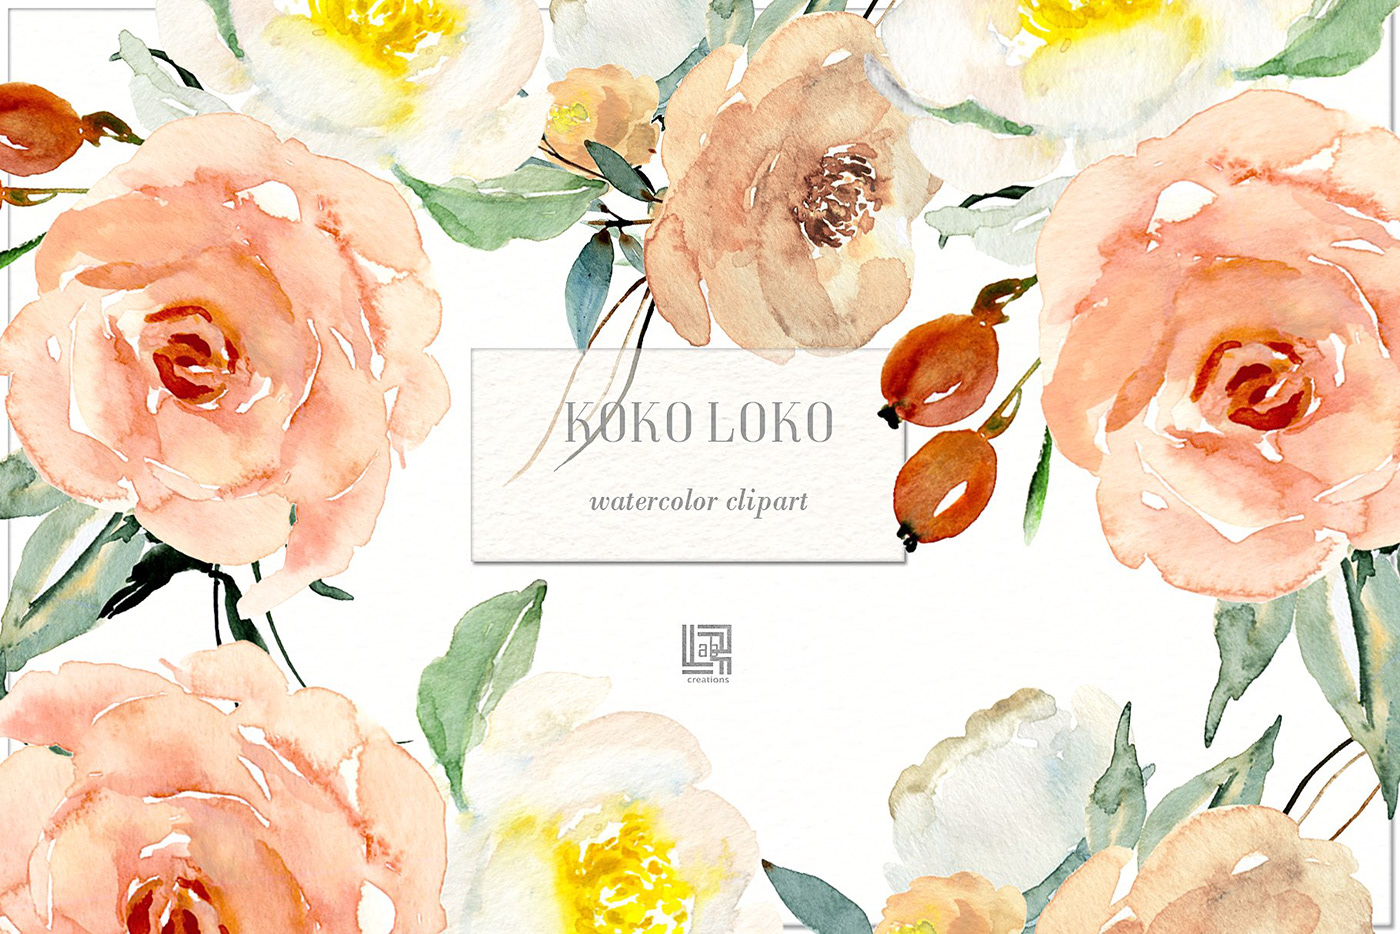 Watercolor Floral Clipart Free at PaintingValley